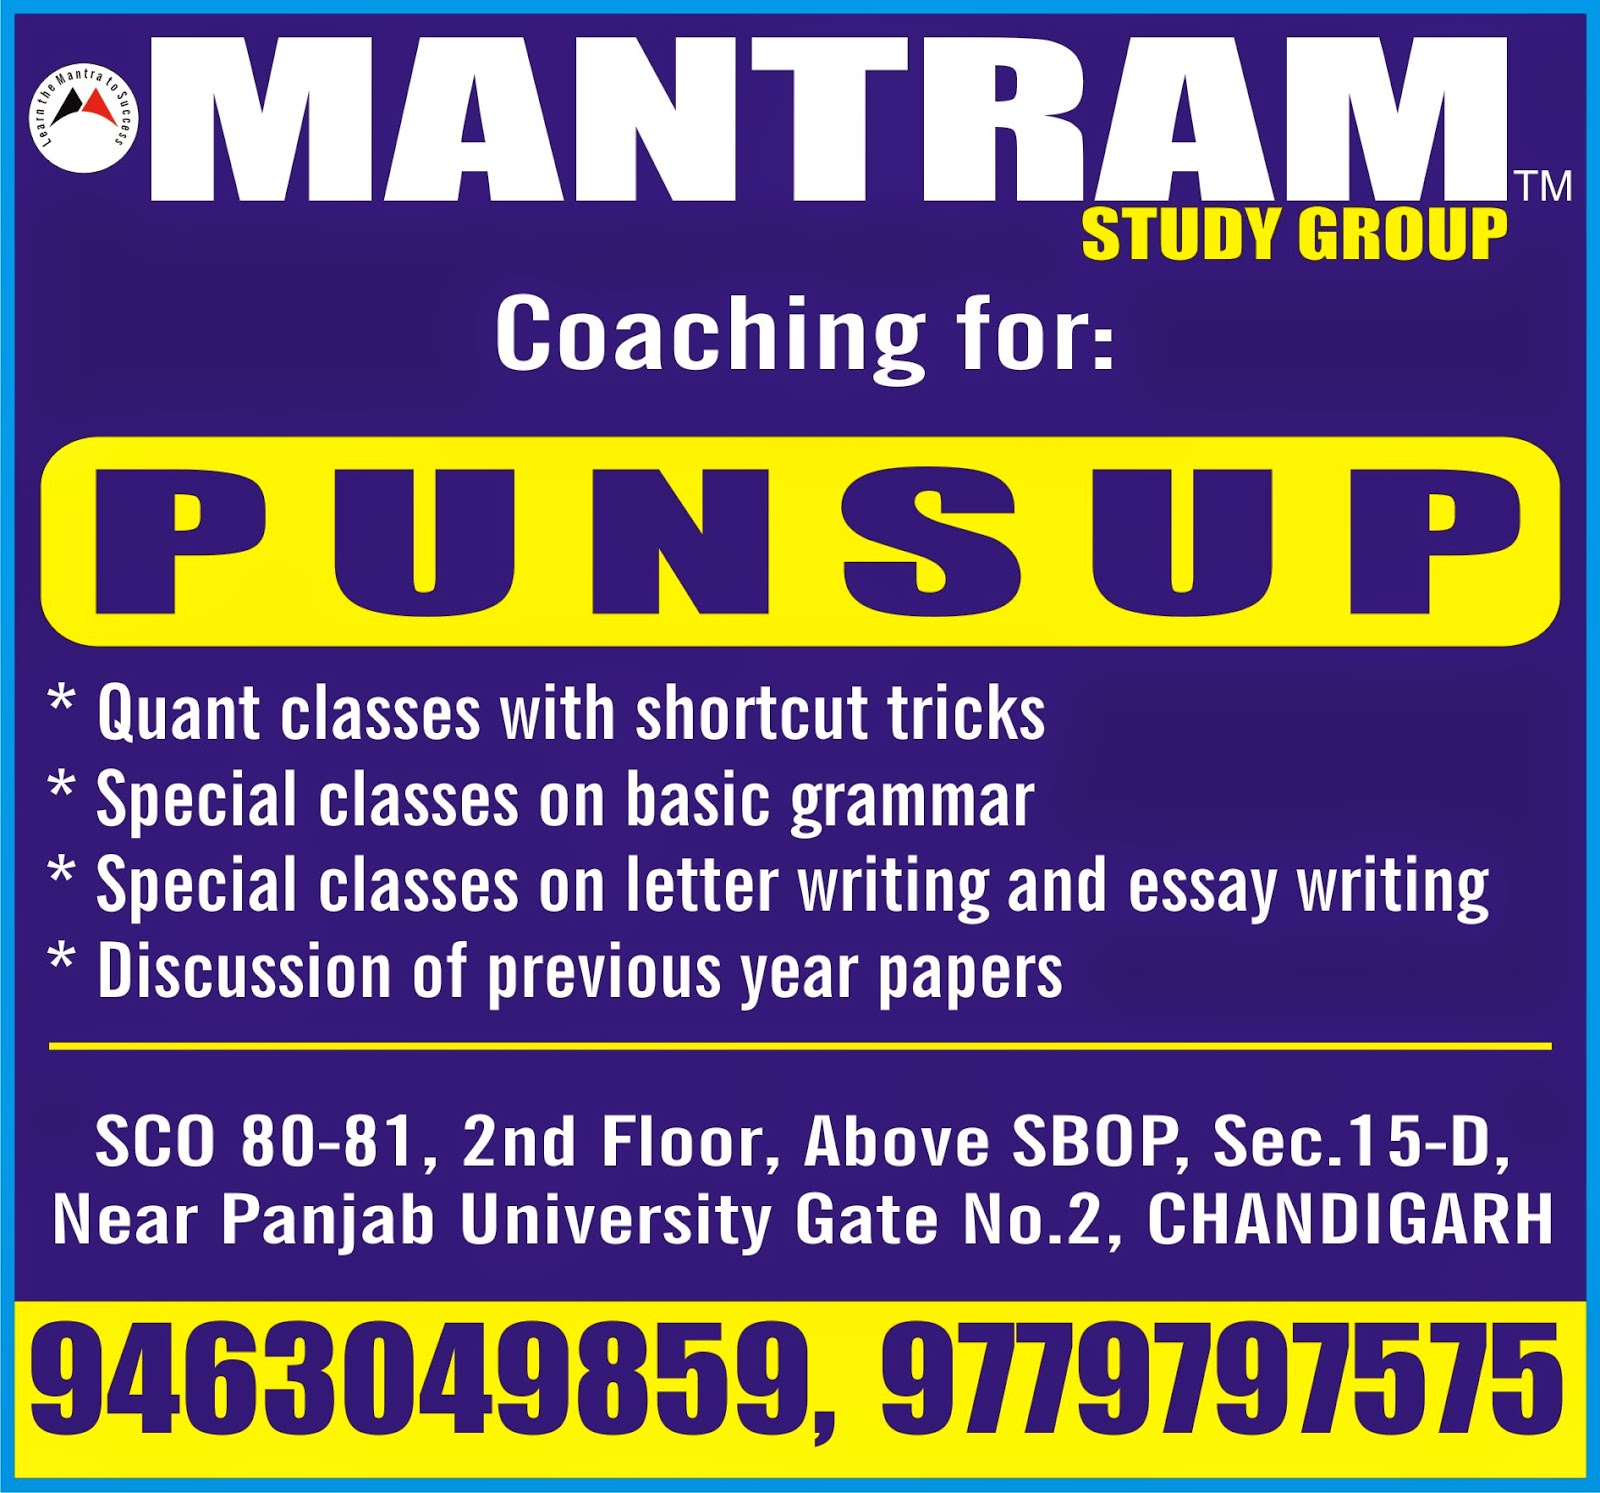 mantram study group punjab jobs  expert coaching for punsup by mantram study group in chandigarh